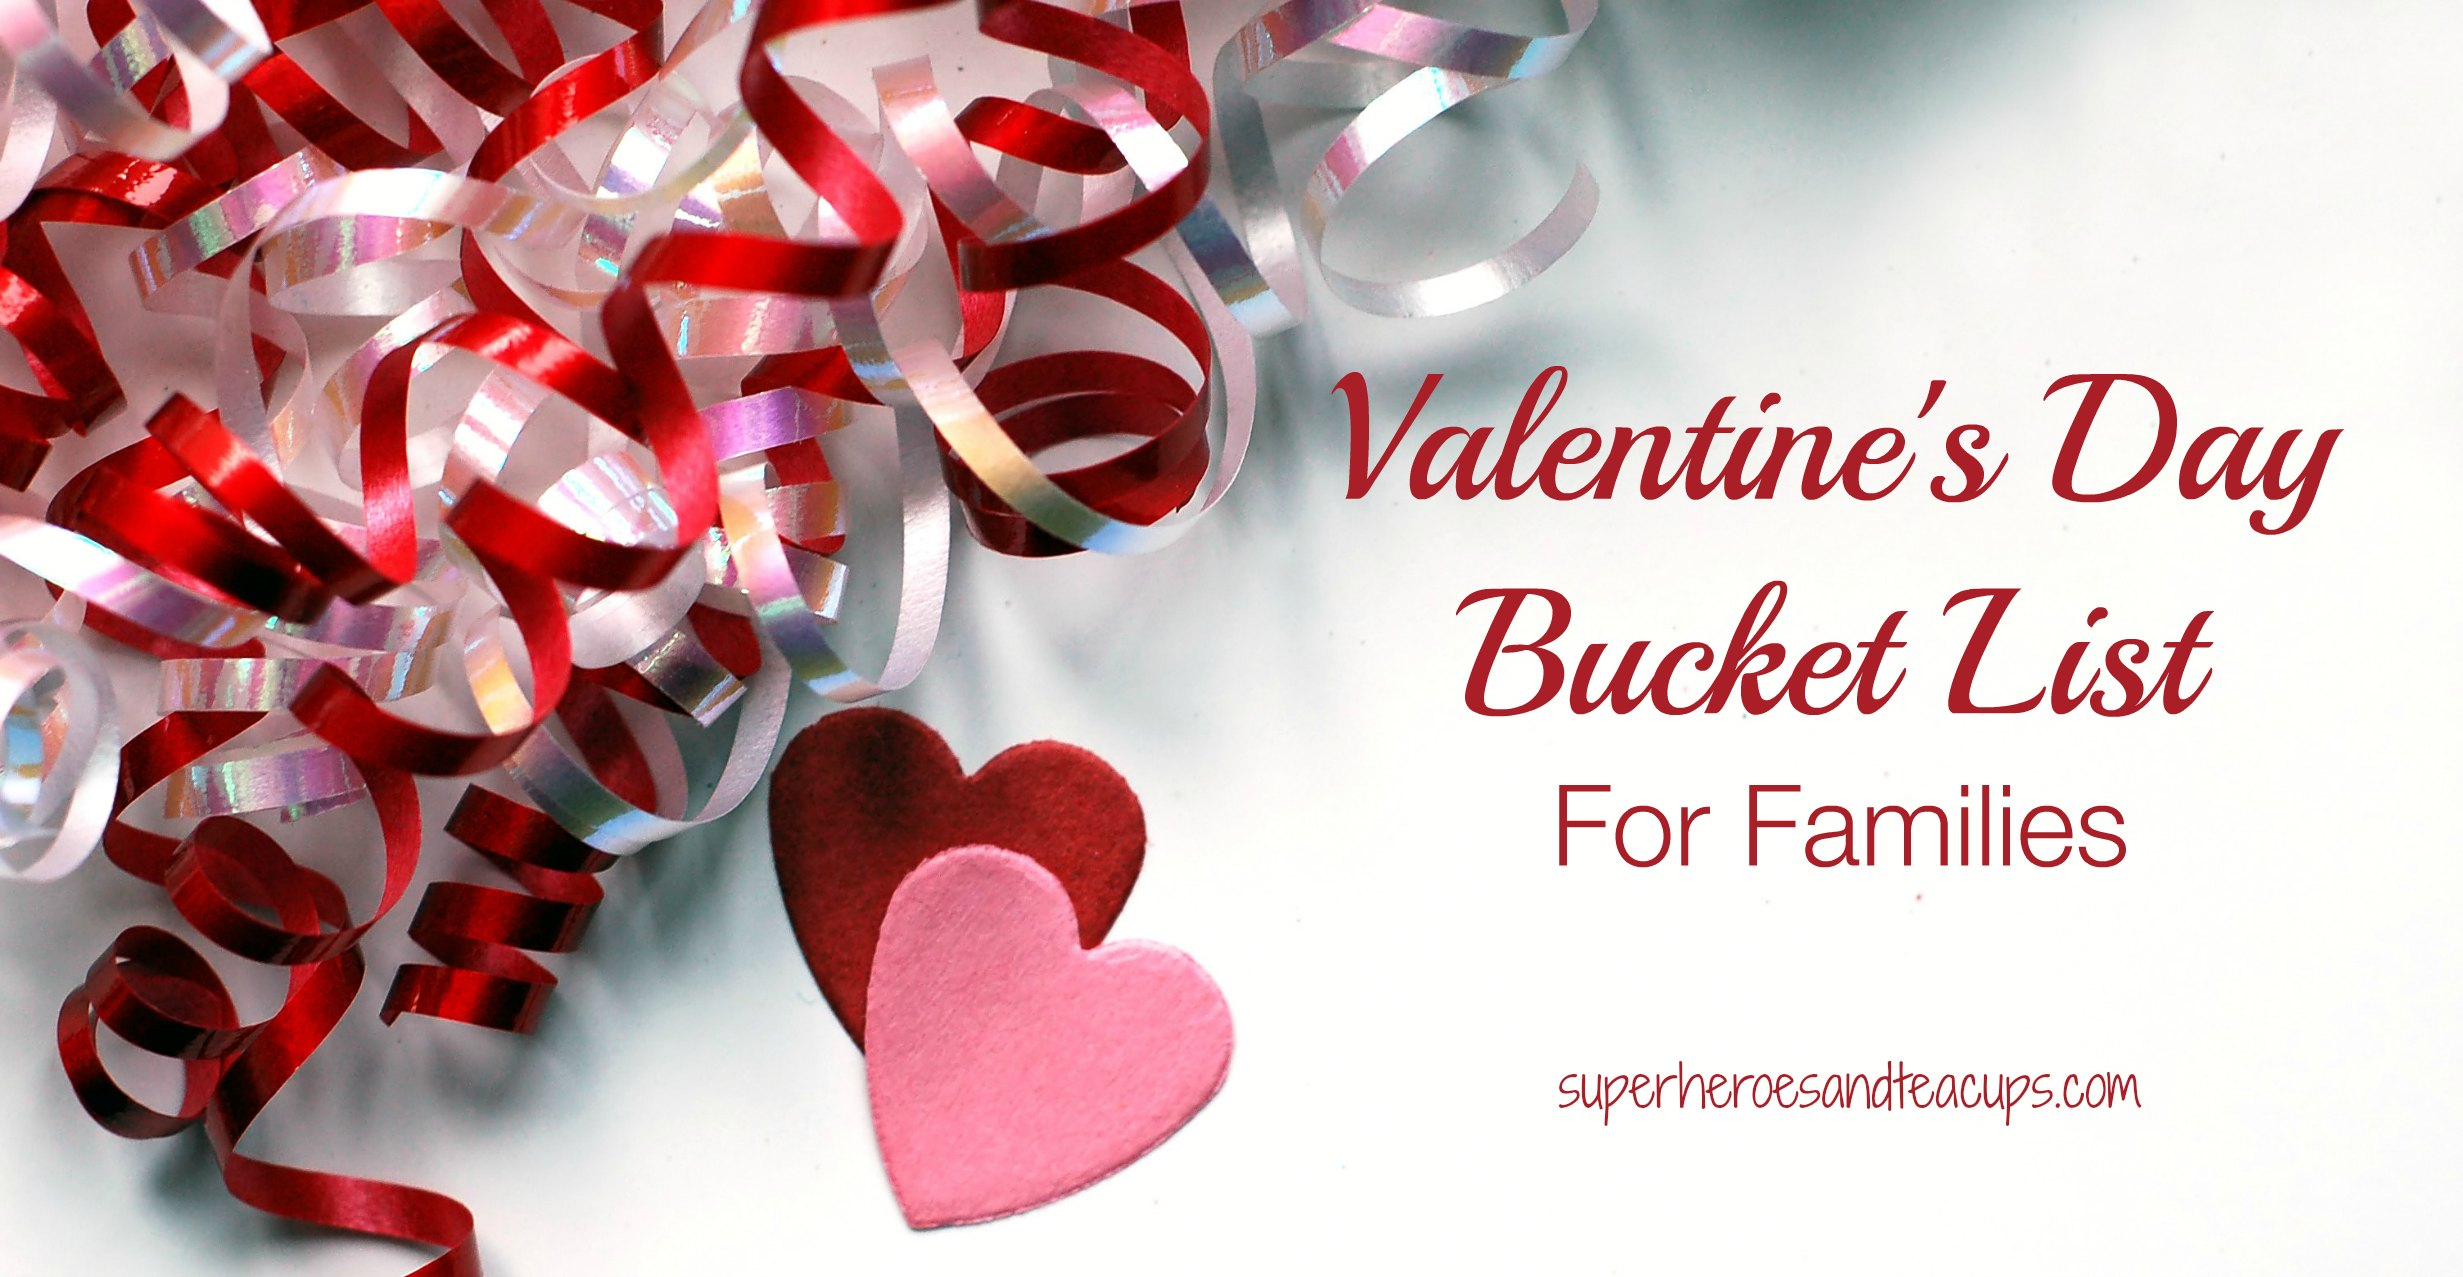 Valentines Day Bucket List for Families